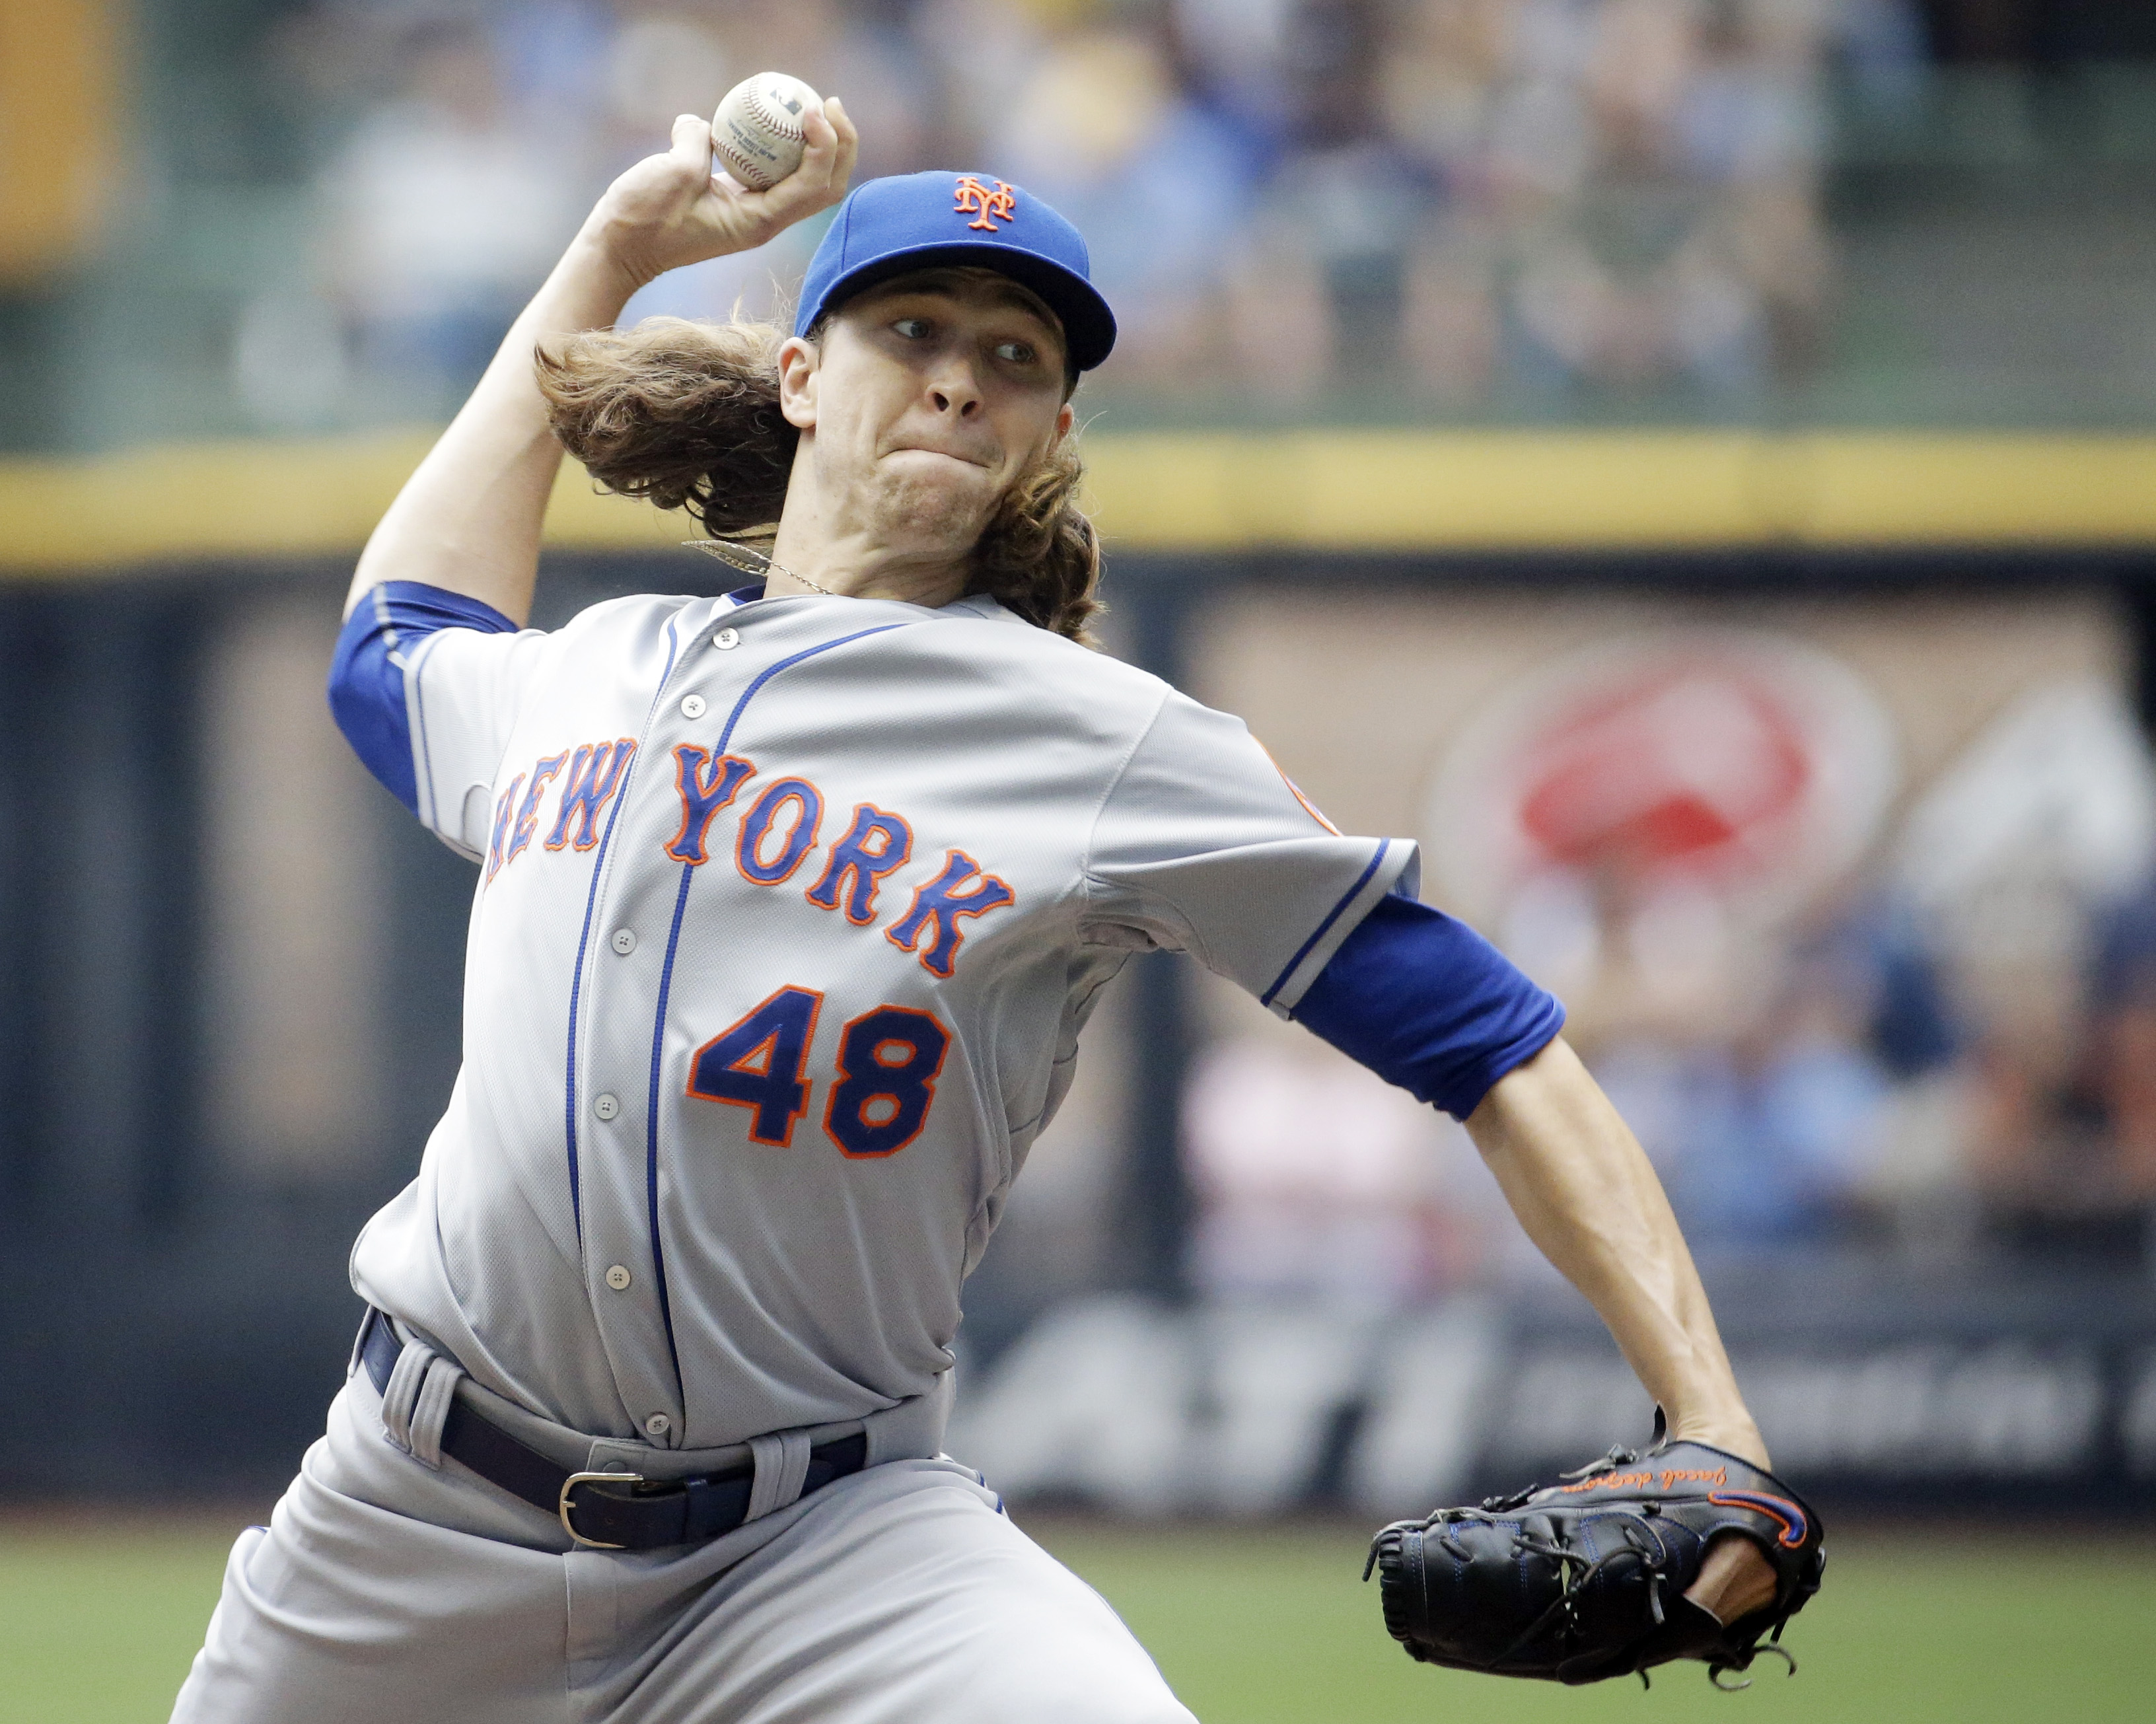 New York Mets starting pitcher Jacob deGrom throws during the first inning of a baseball game against the Milwaukee Brewers Thursday, June 25, 2015, in Milwaukee. (AP Photo/Morry Gash)